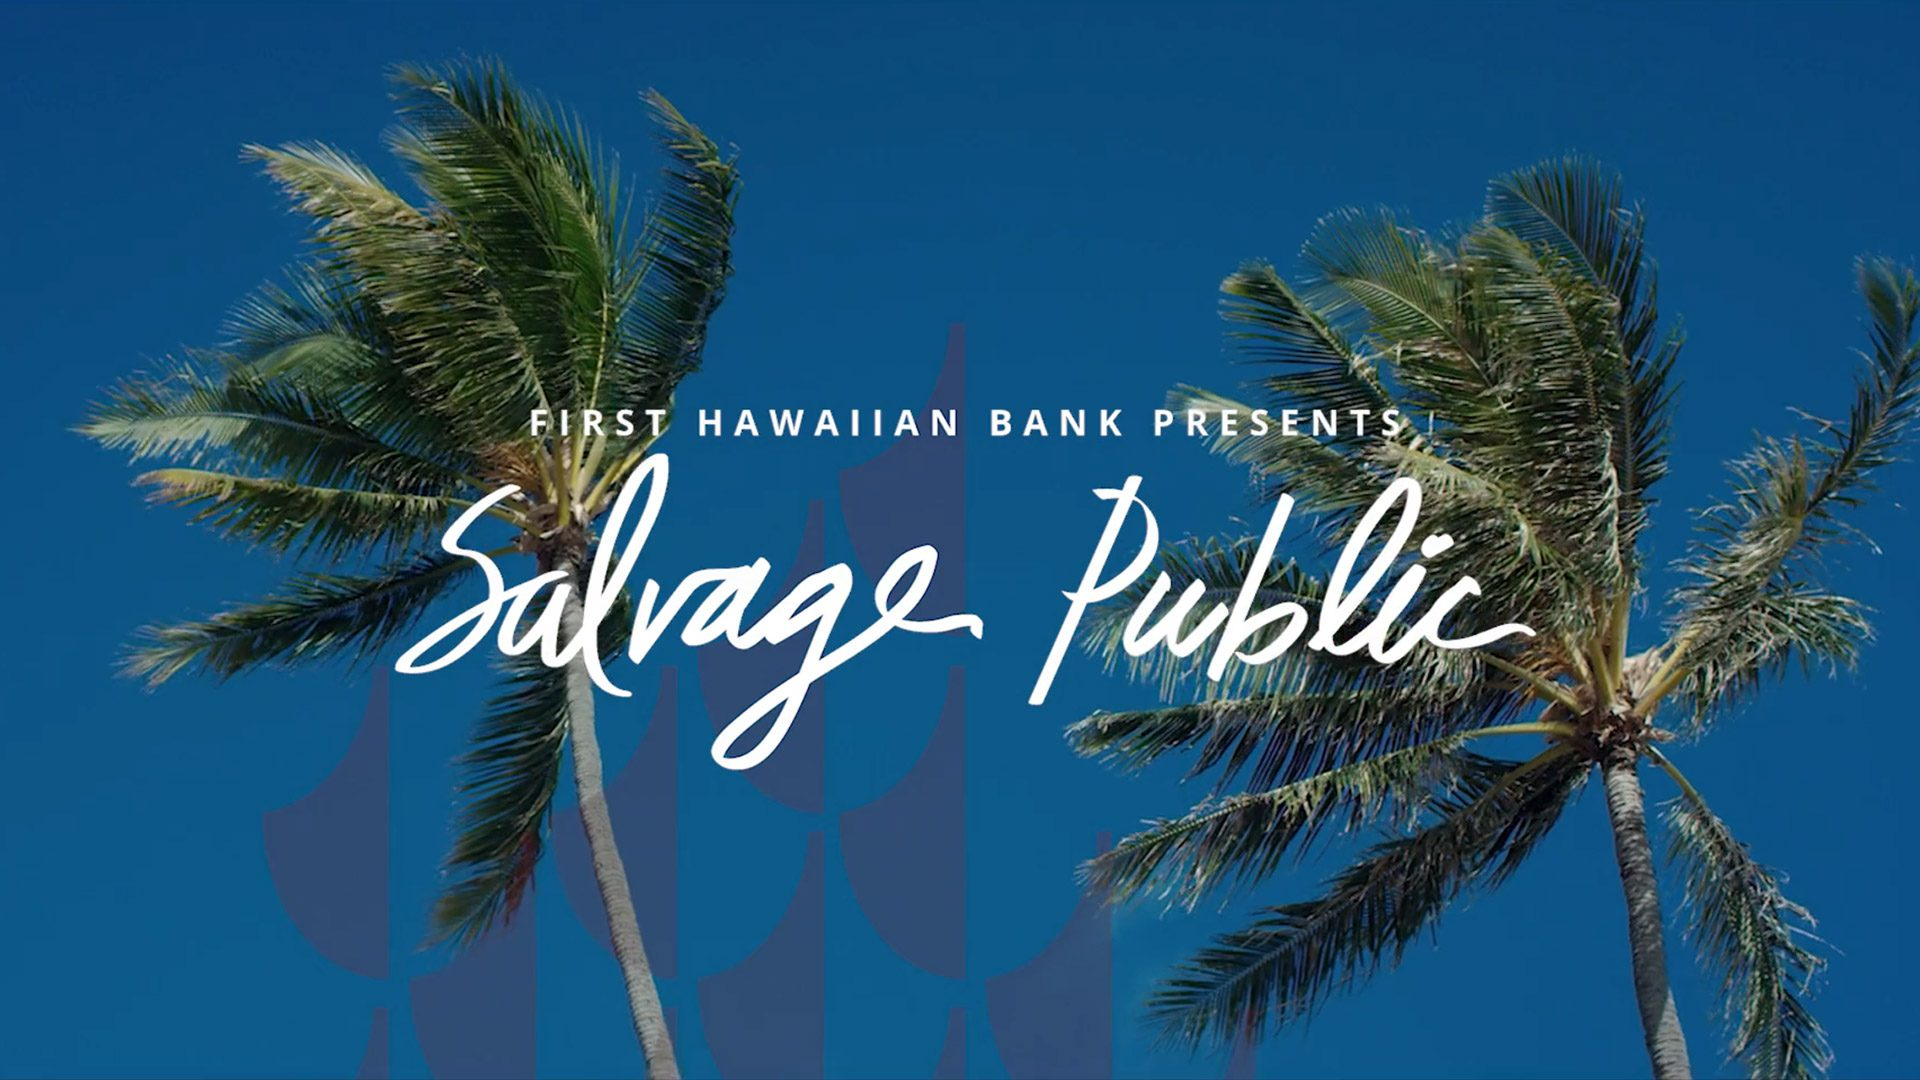 First Hawaiian Bank: Small Business Banking with Salvage Public (Full)